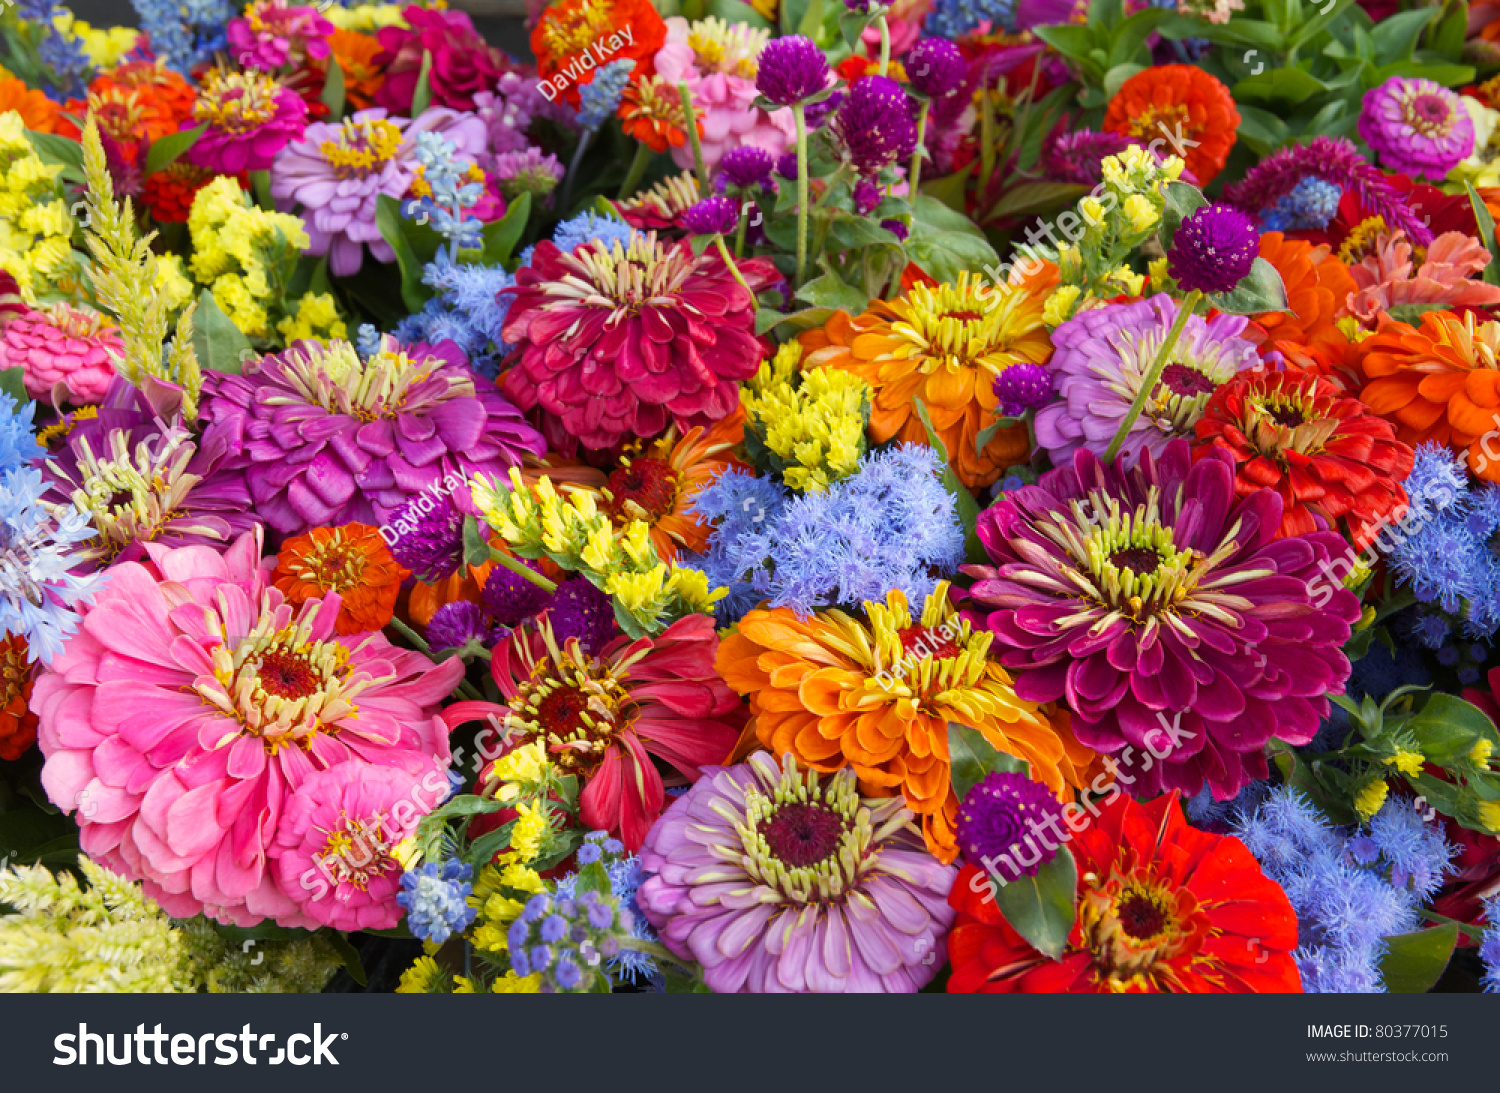 Fresh Summer Flower Bouquet Farm Market Stock Photo (Safe to Use ...